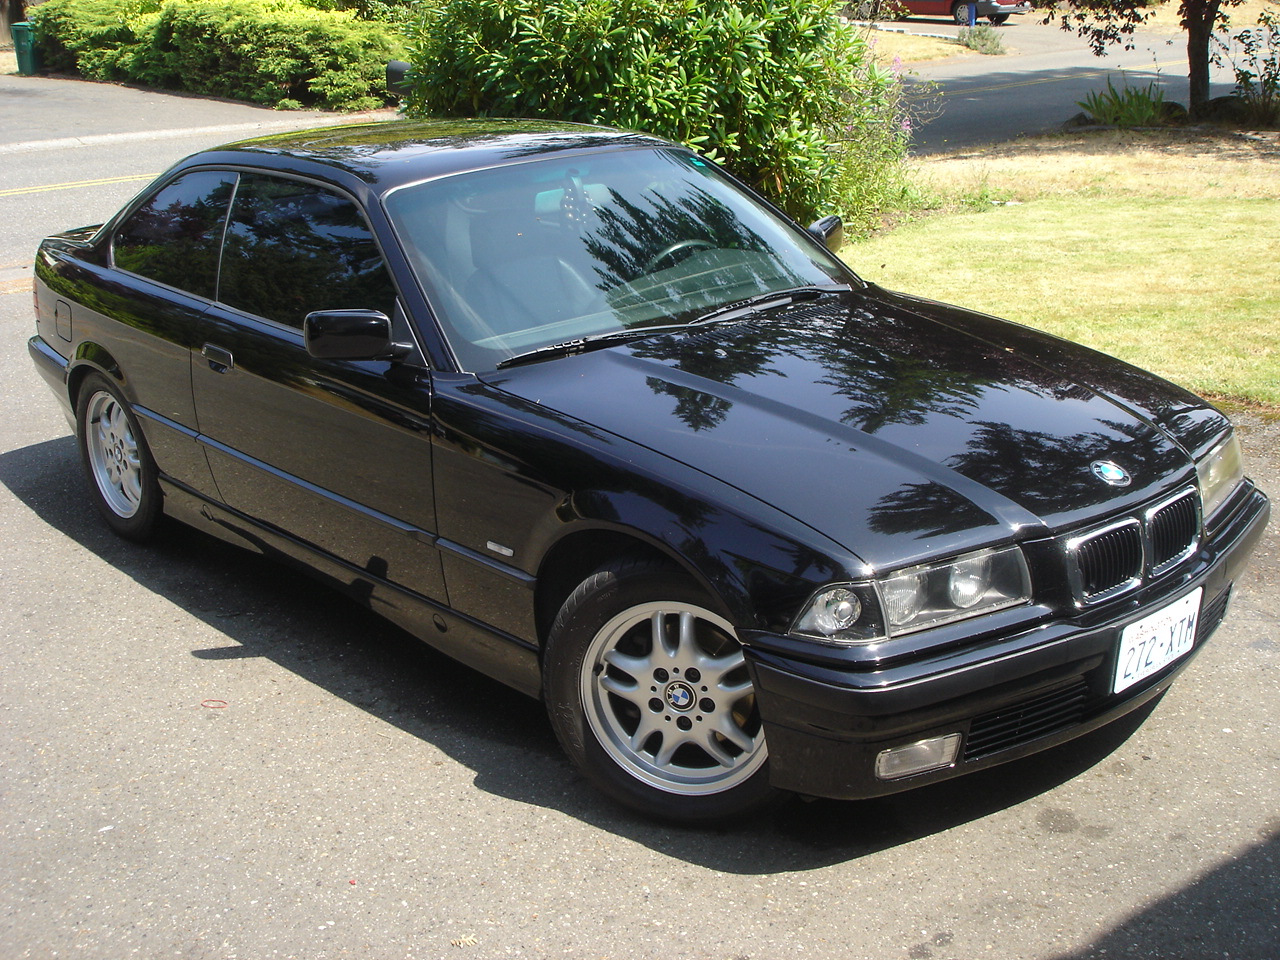 BMW 3 series 325i 1998 photo - 5